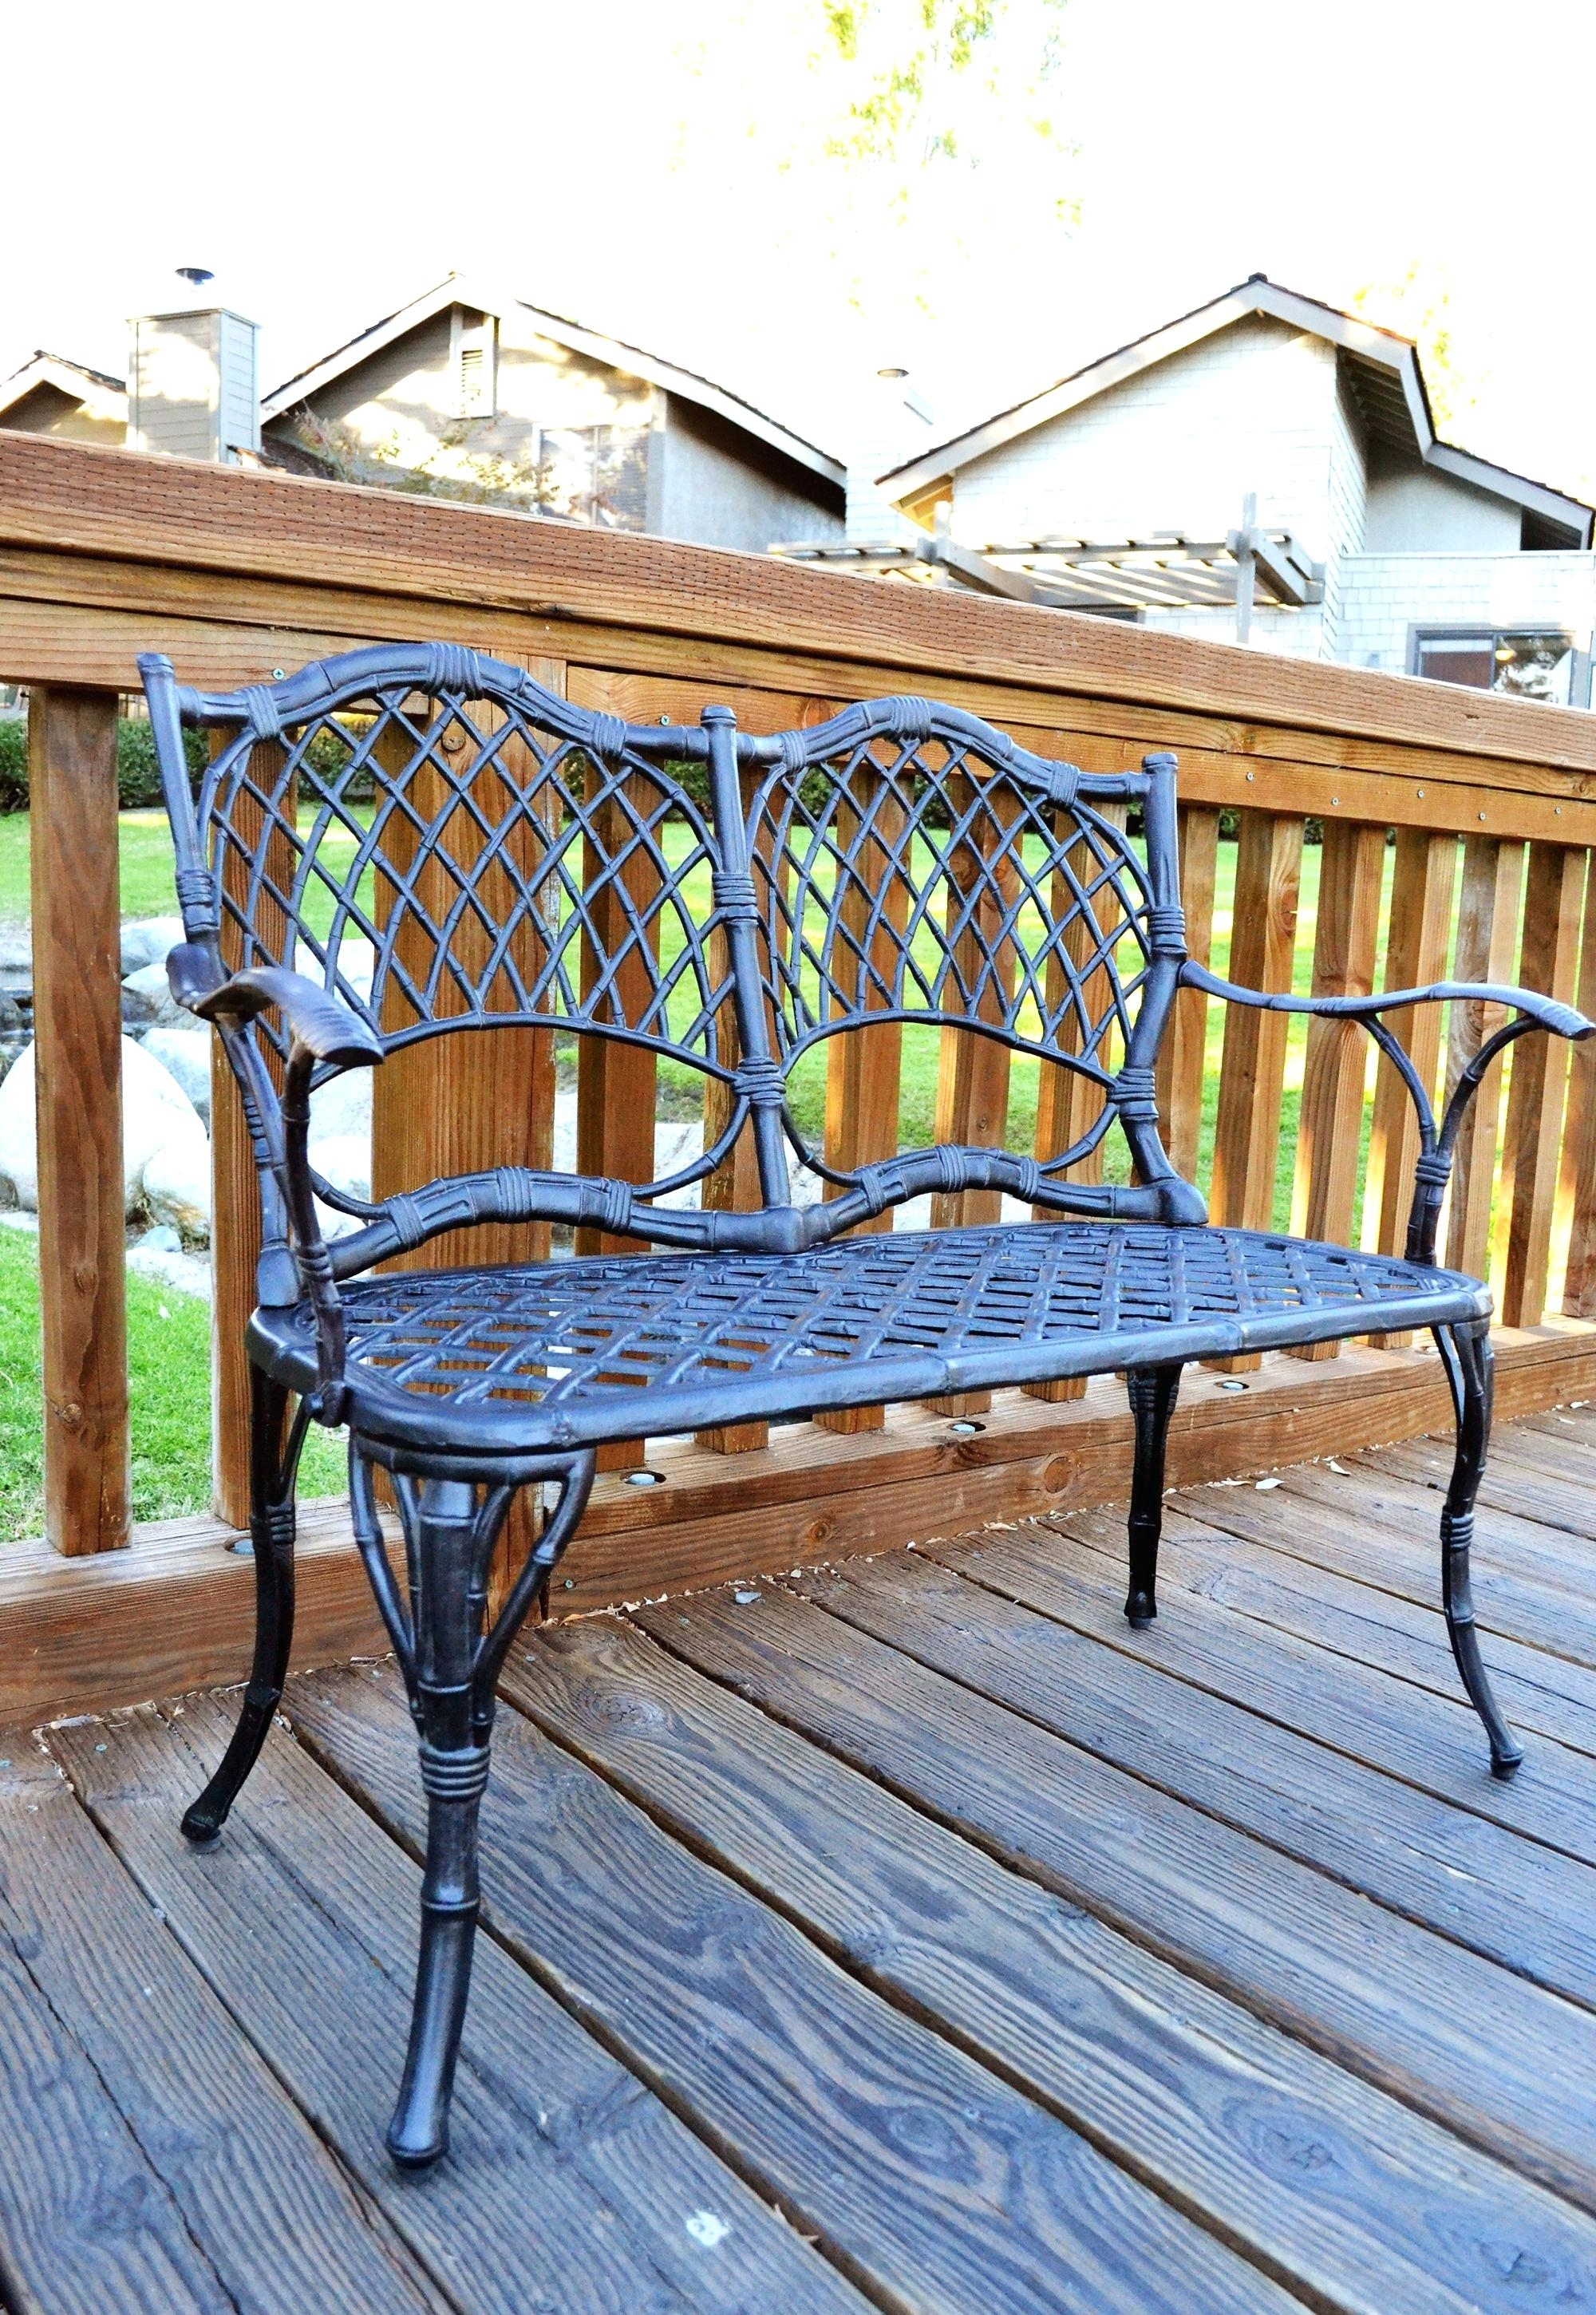 Aluminum patio furniture has always been a popular outdoor furniture option because they are extremely practical and they look good